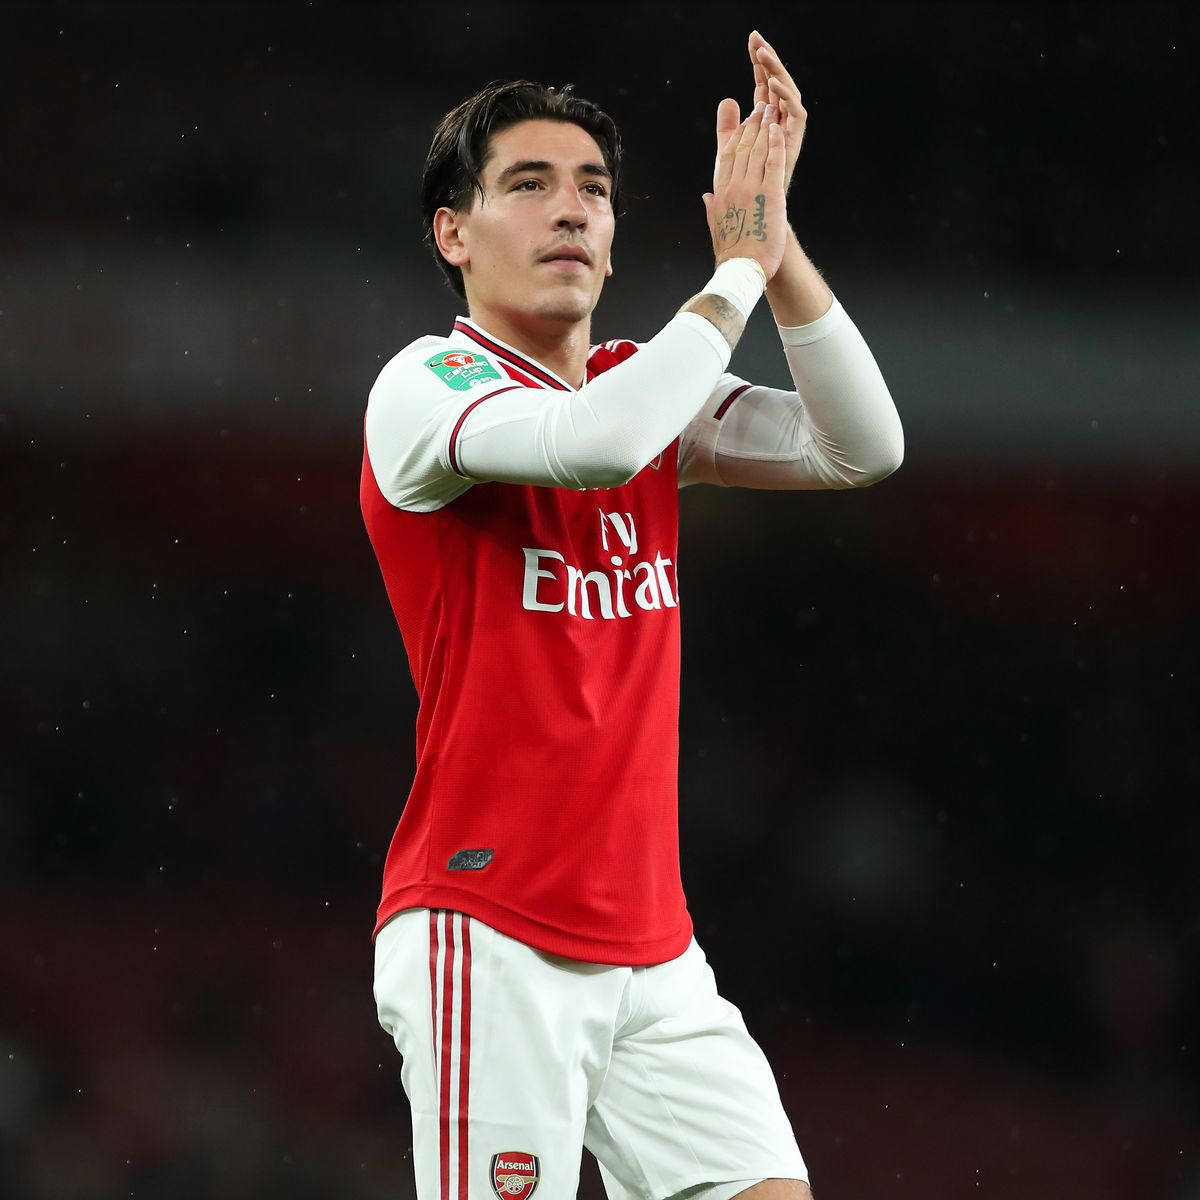 Hector Bellerin Networth, Biography, Career and Awards in 2020